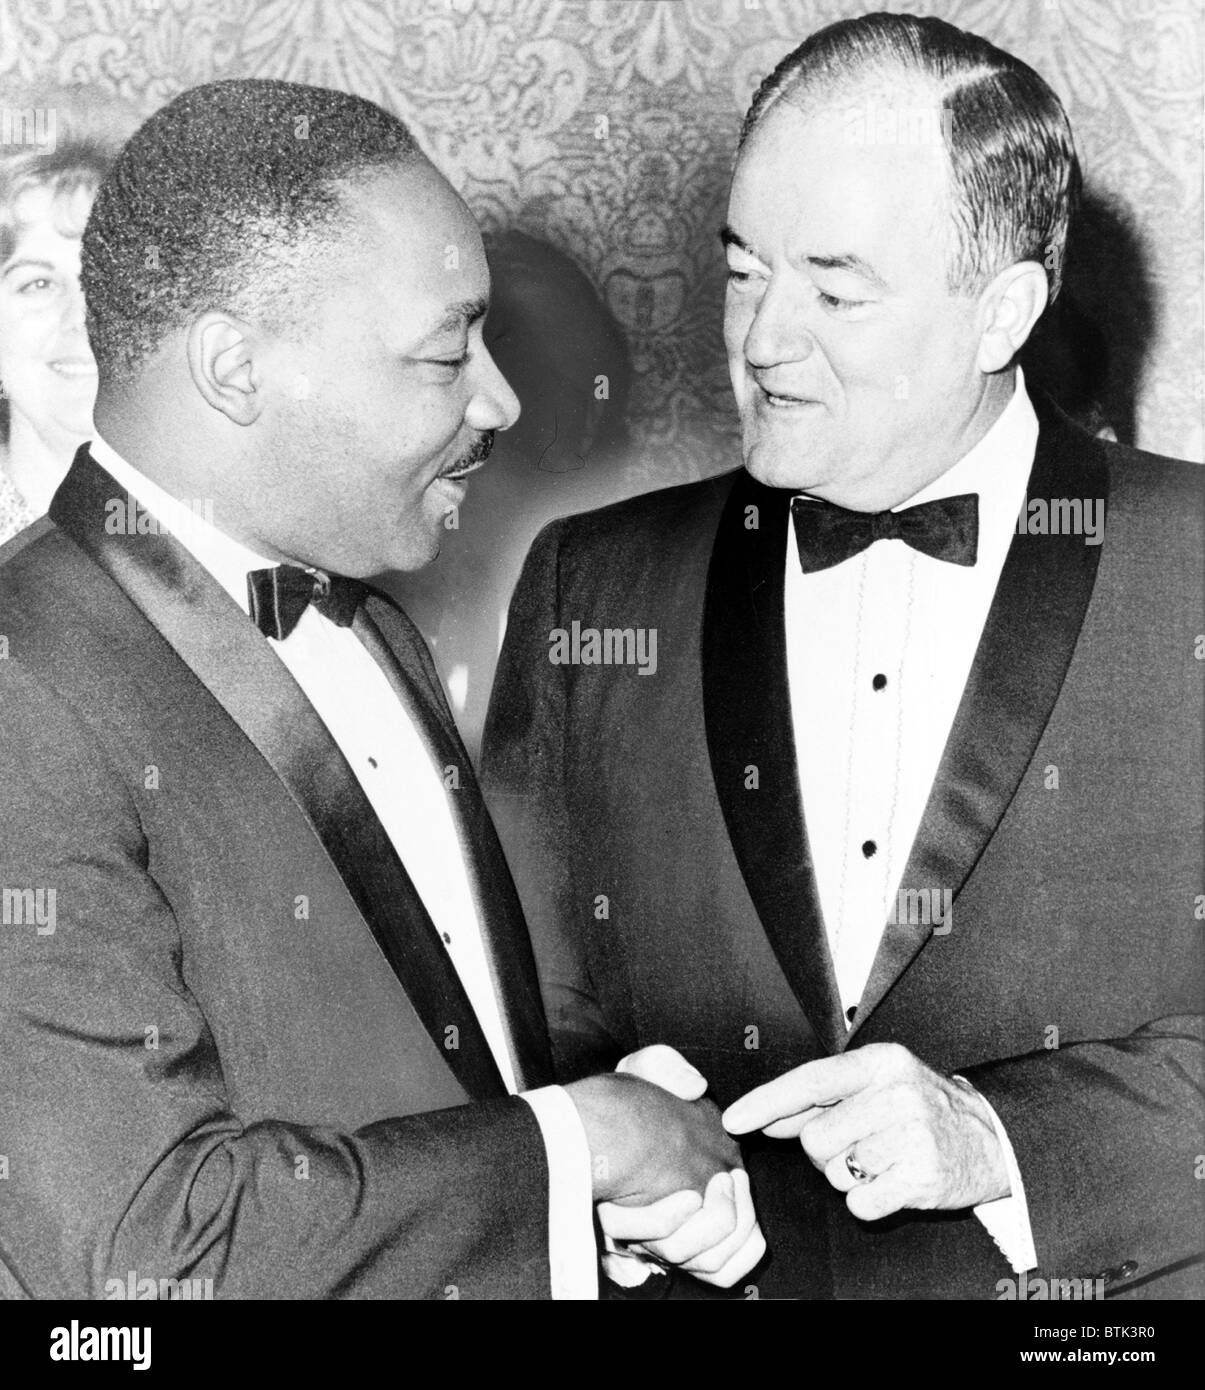 Martin Luther King, Jr. (1929-1968), chats with Vice-President Hubert Humphrey (1911-1978).  Humphrey was an early - Stock Image